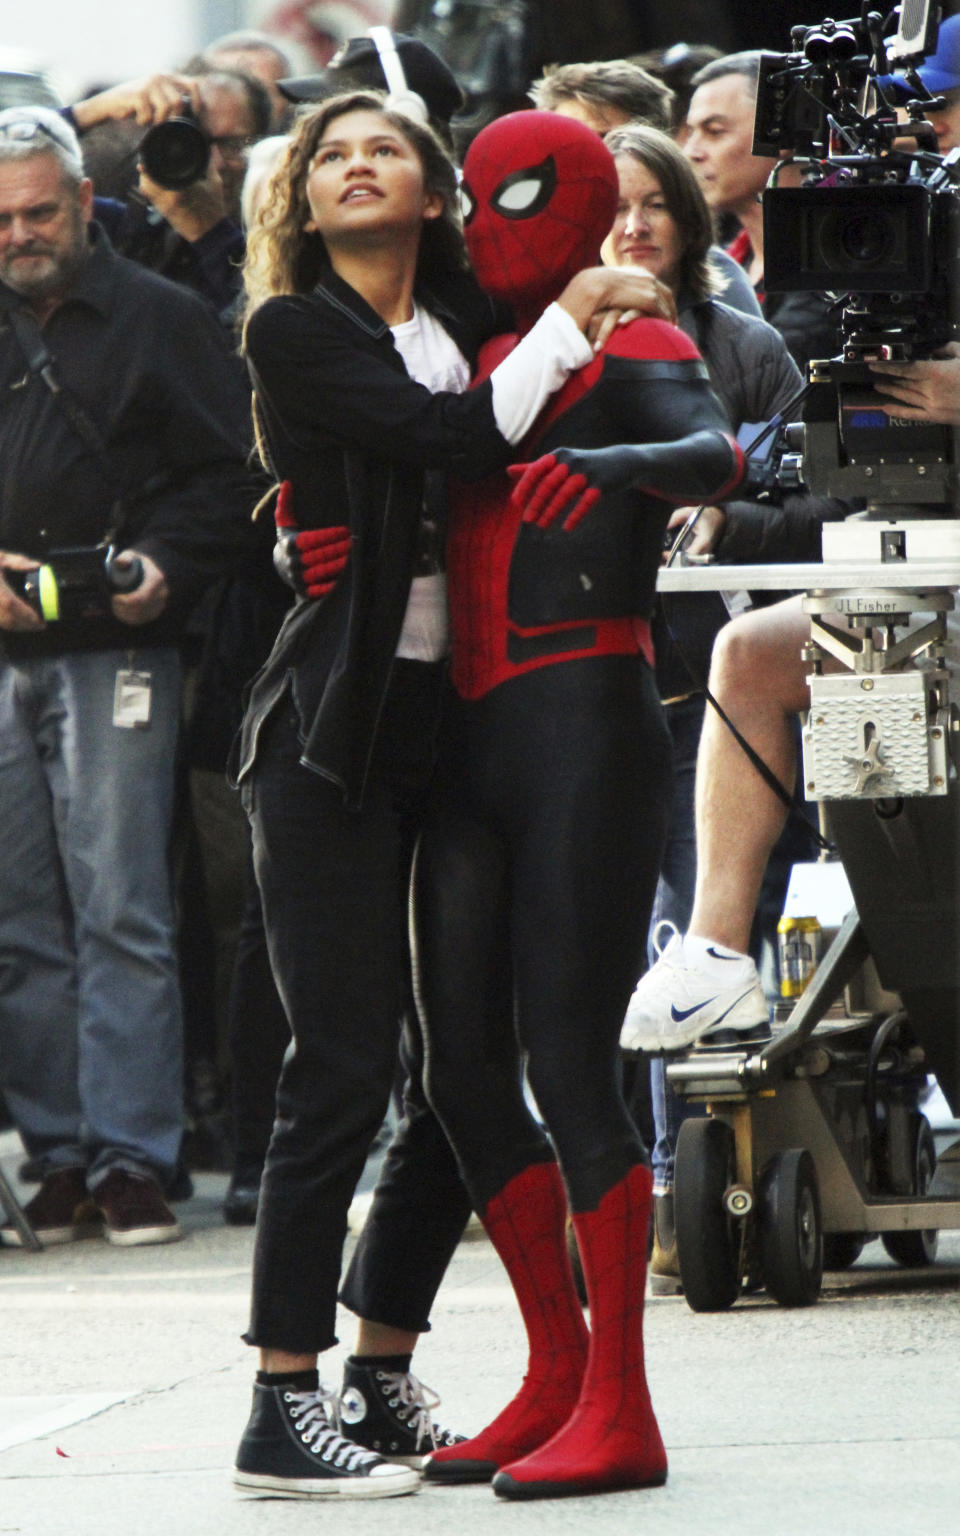 October 12, 2018 Tom Holland, Zendaya filiming Spider-Man: Far From Home Filming in New York October 12, 2018 Credit: RW / MediaPunch /IPX